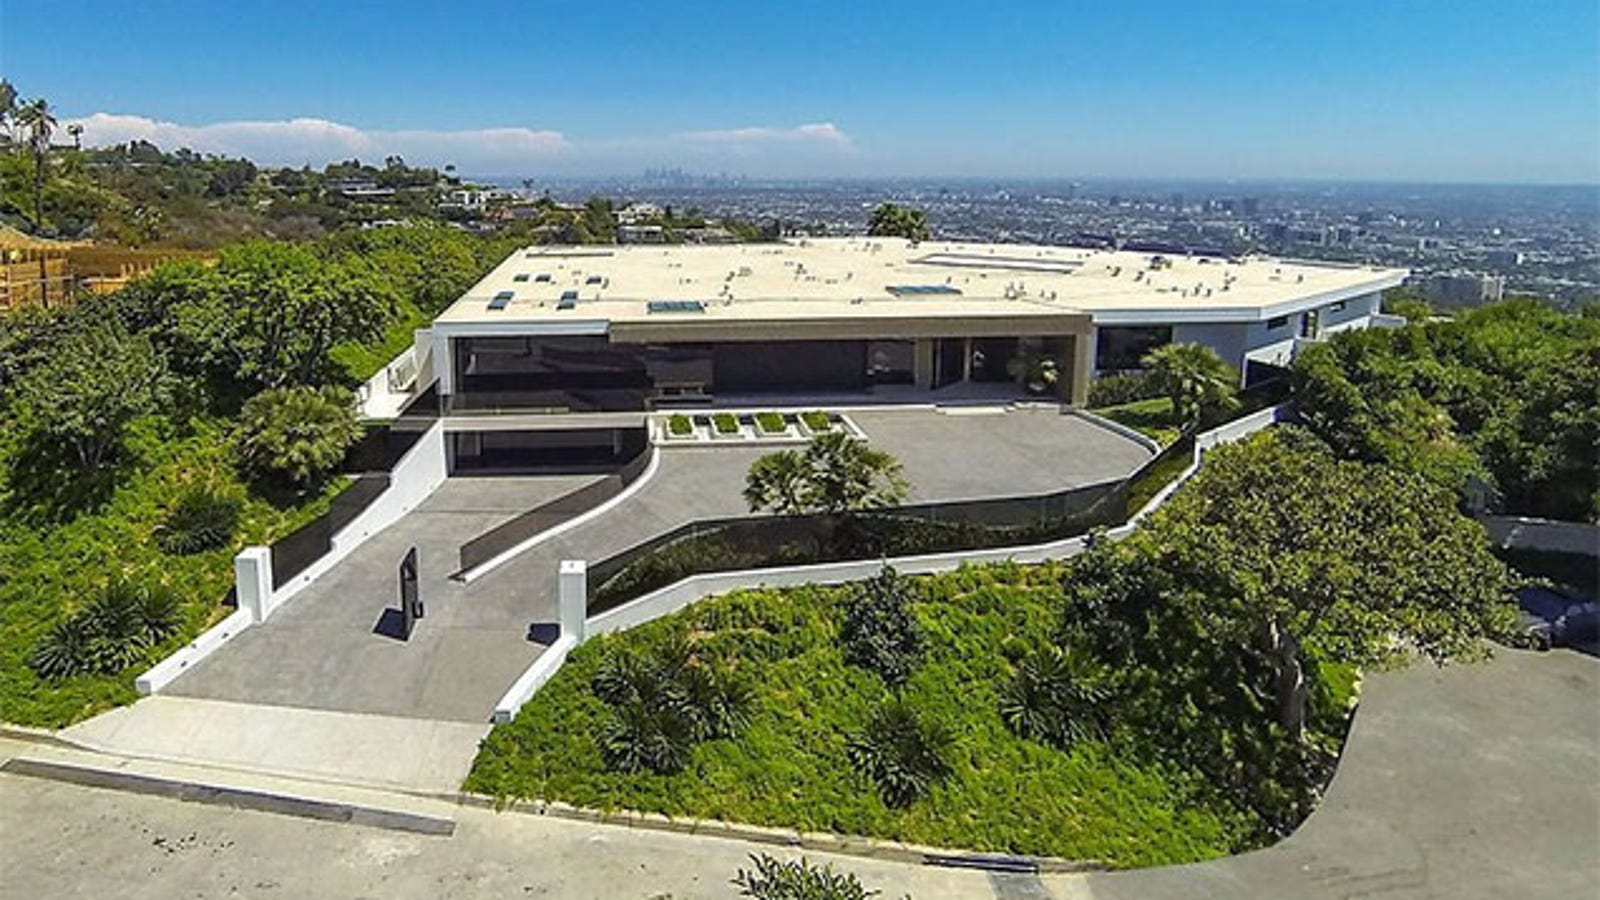 Minecraft's Creator Buys The Most Expensive House In Beverly